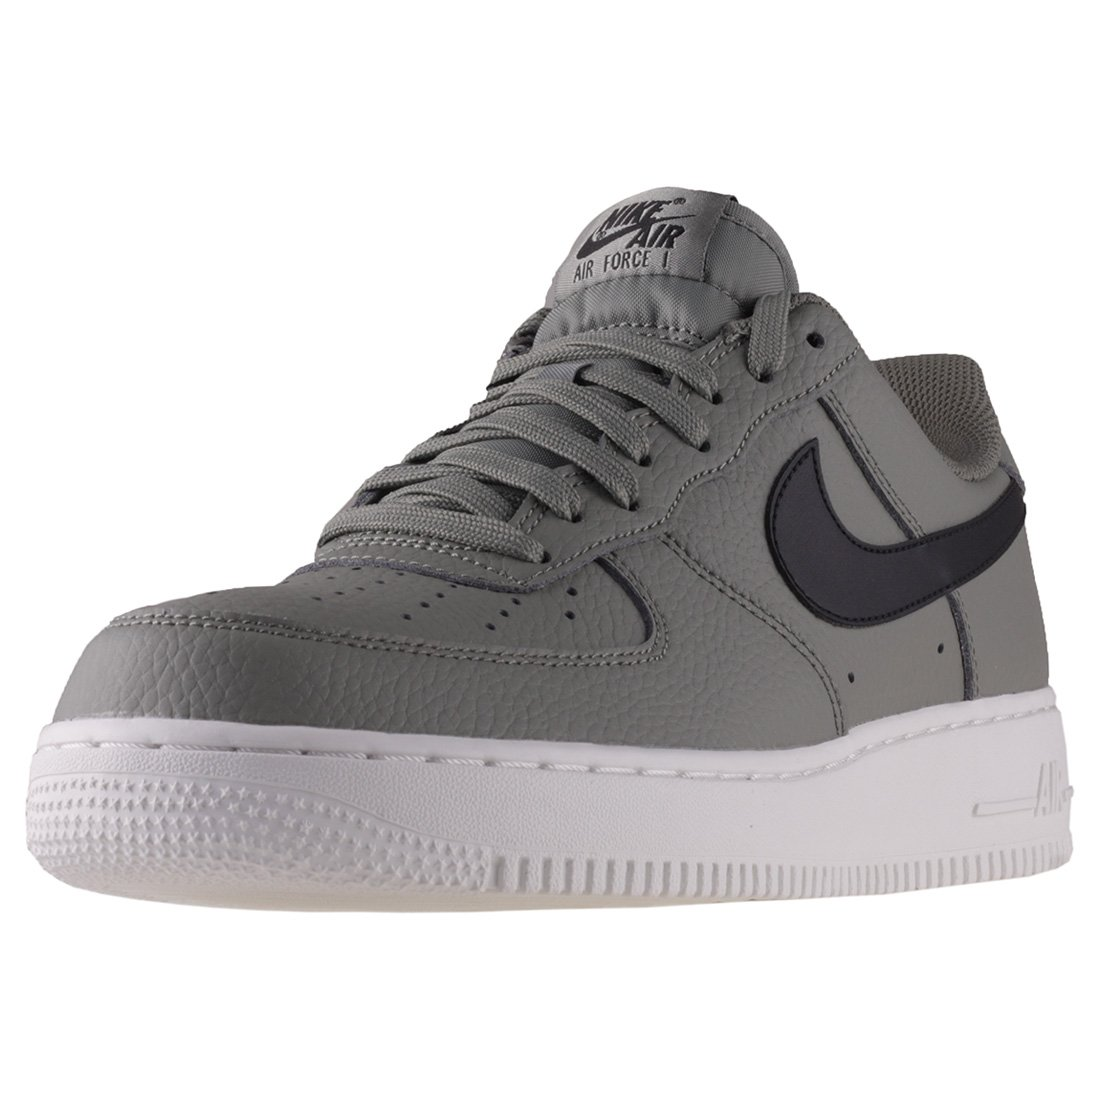 MultiColor (Dark Stucco negro su 007) 007) Nike Air Force 1